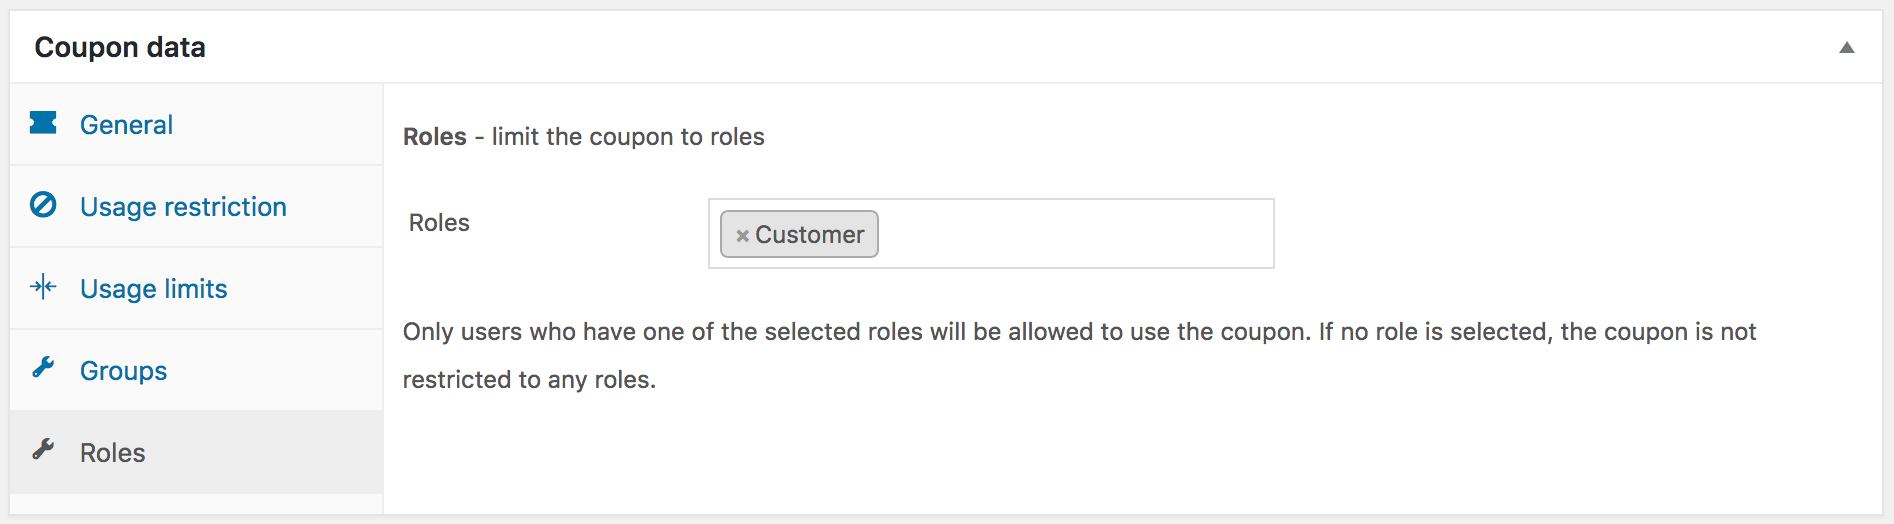 Settings for a coupon restricted to the Customer role